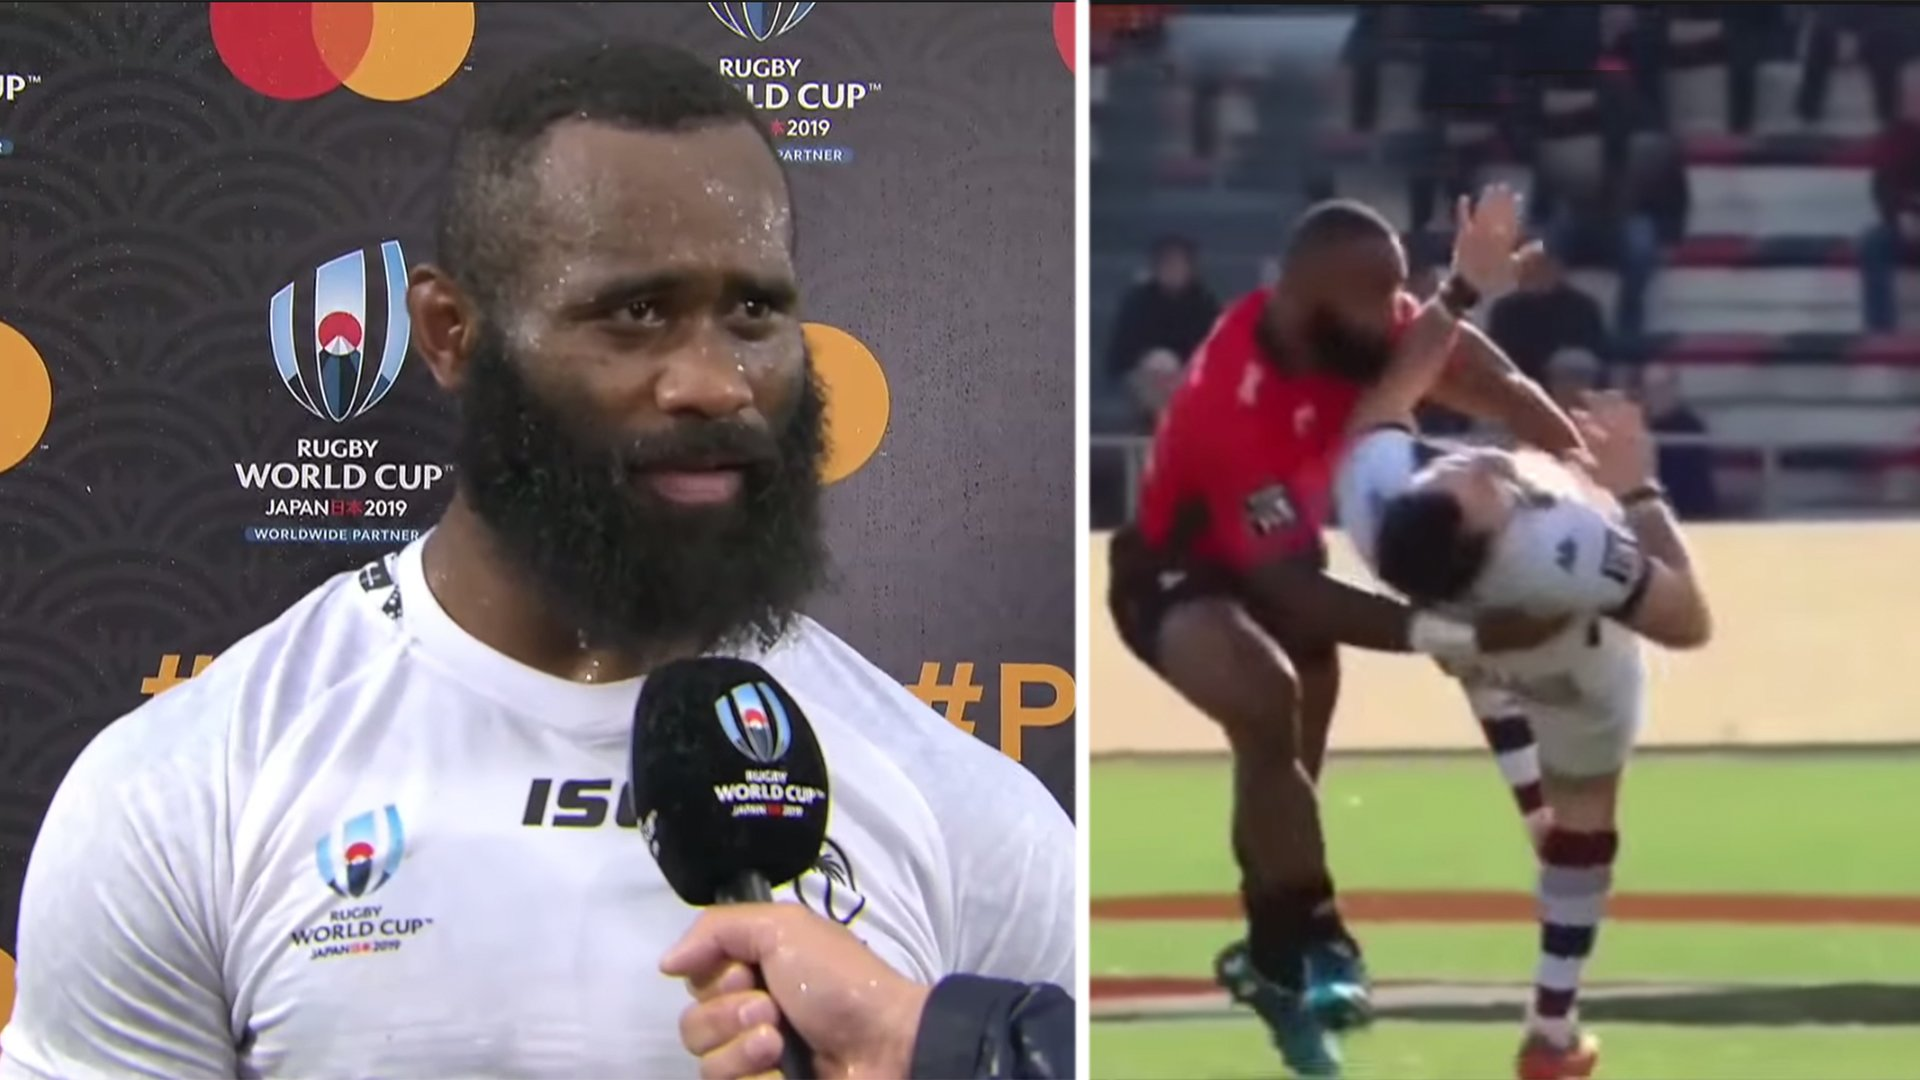 The reason clubs in England must fear Semi Radradra and his arrival to their league